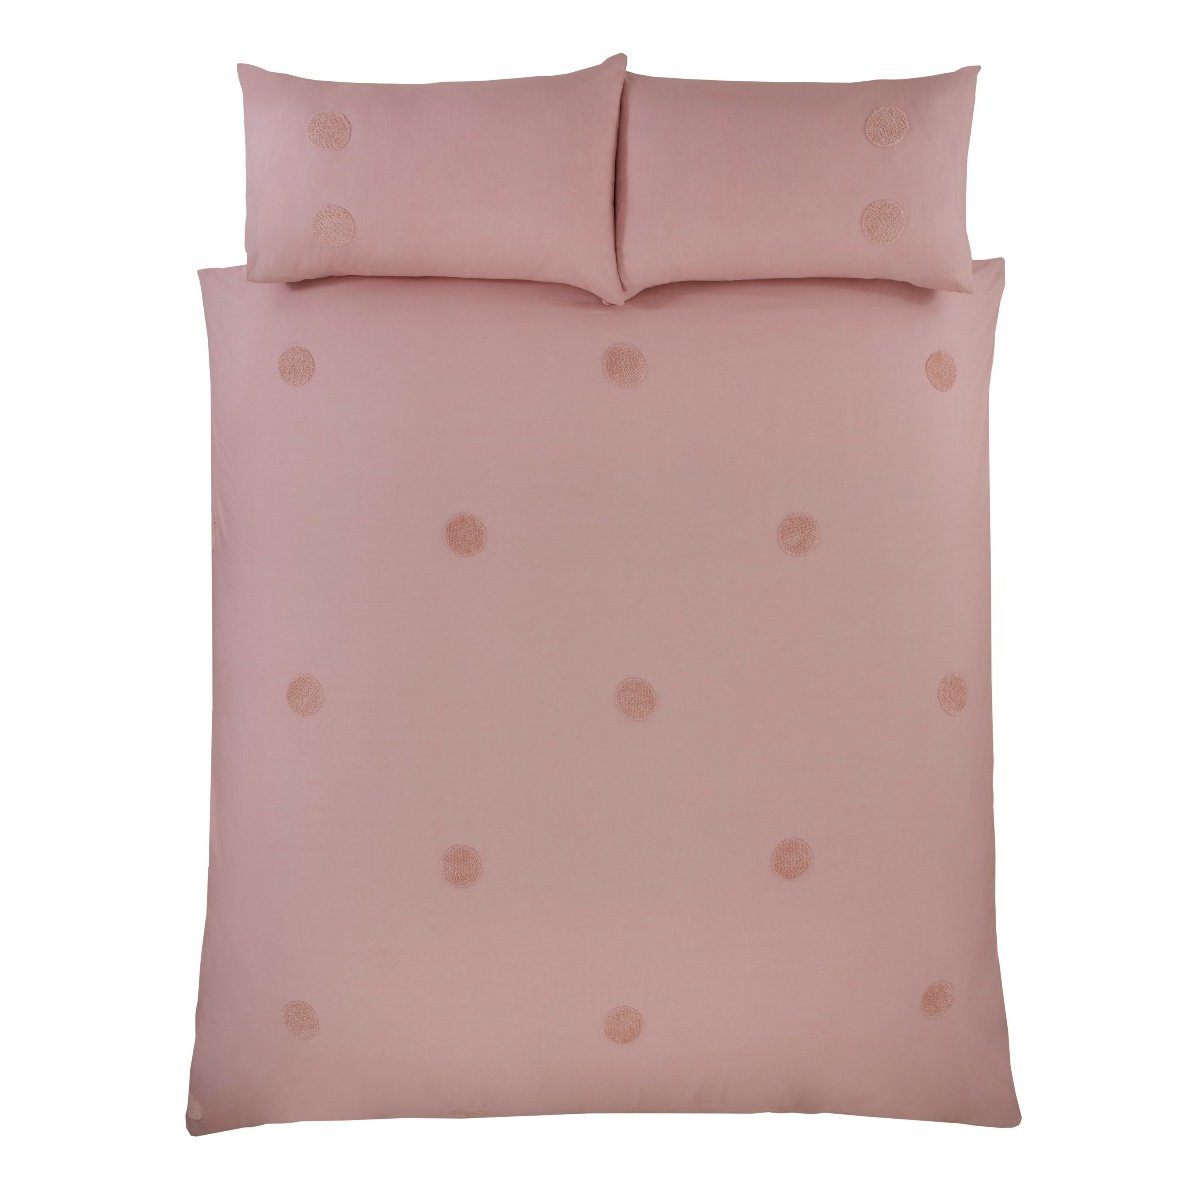 Embroidered Circles Blush Bedding - Duvet Cover and Pillowcase Set